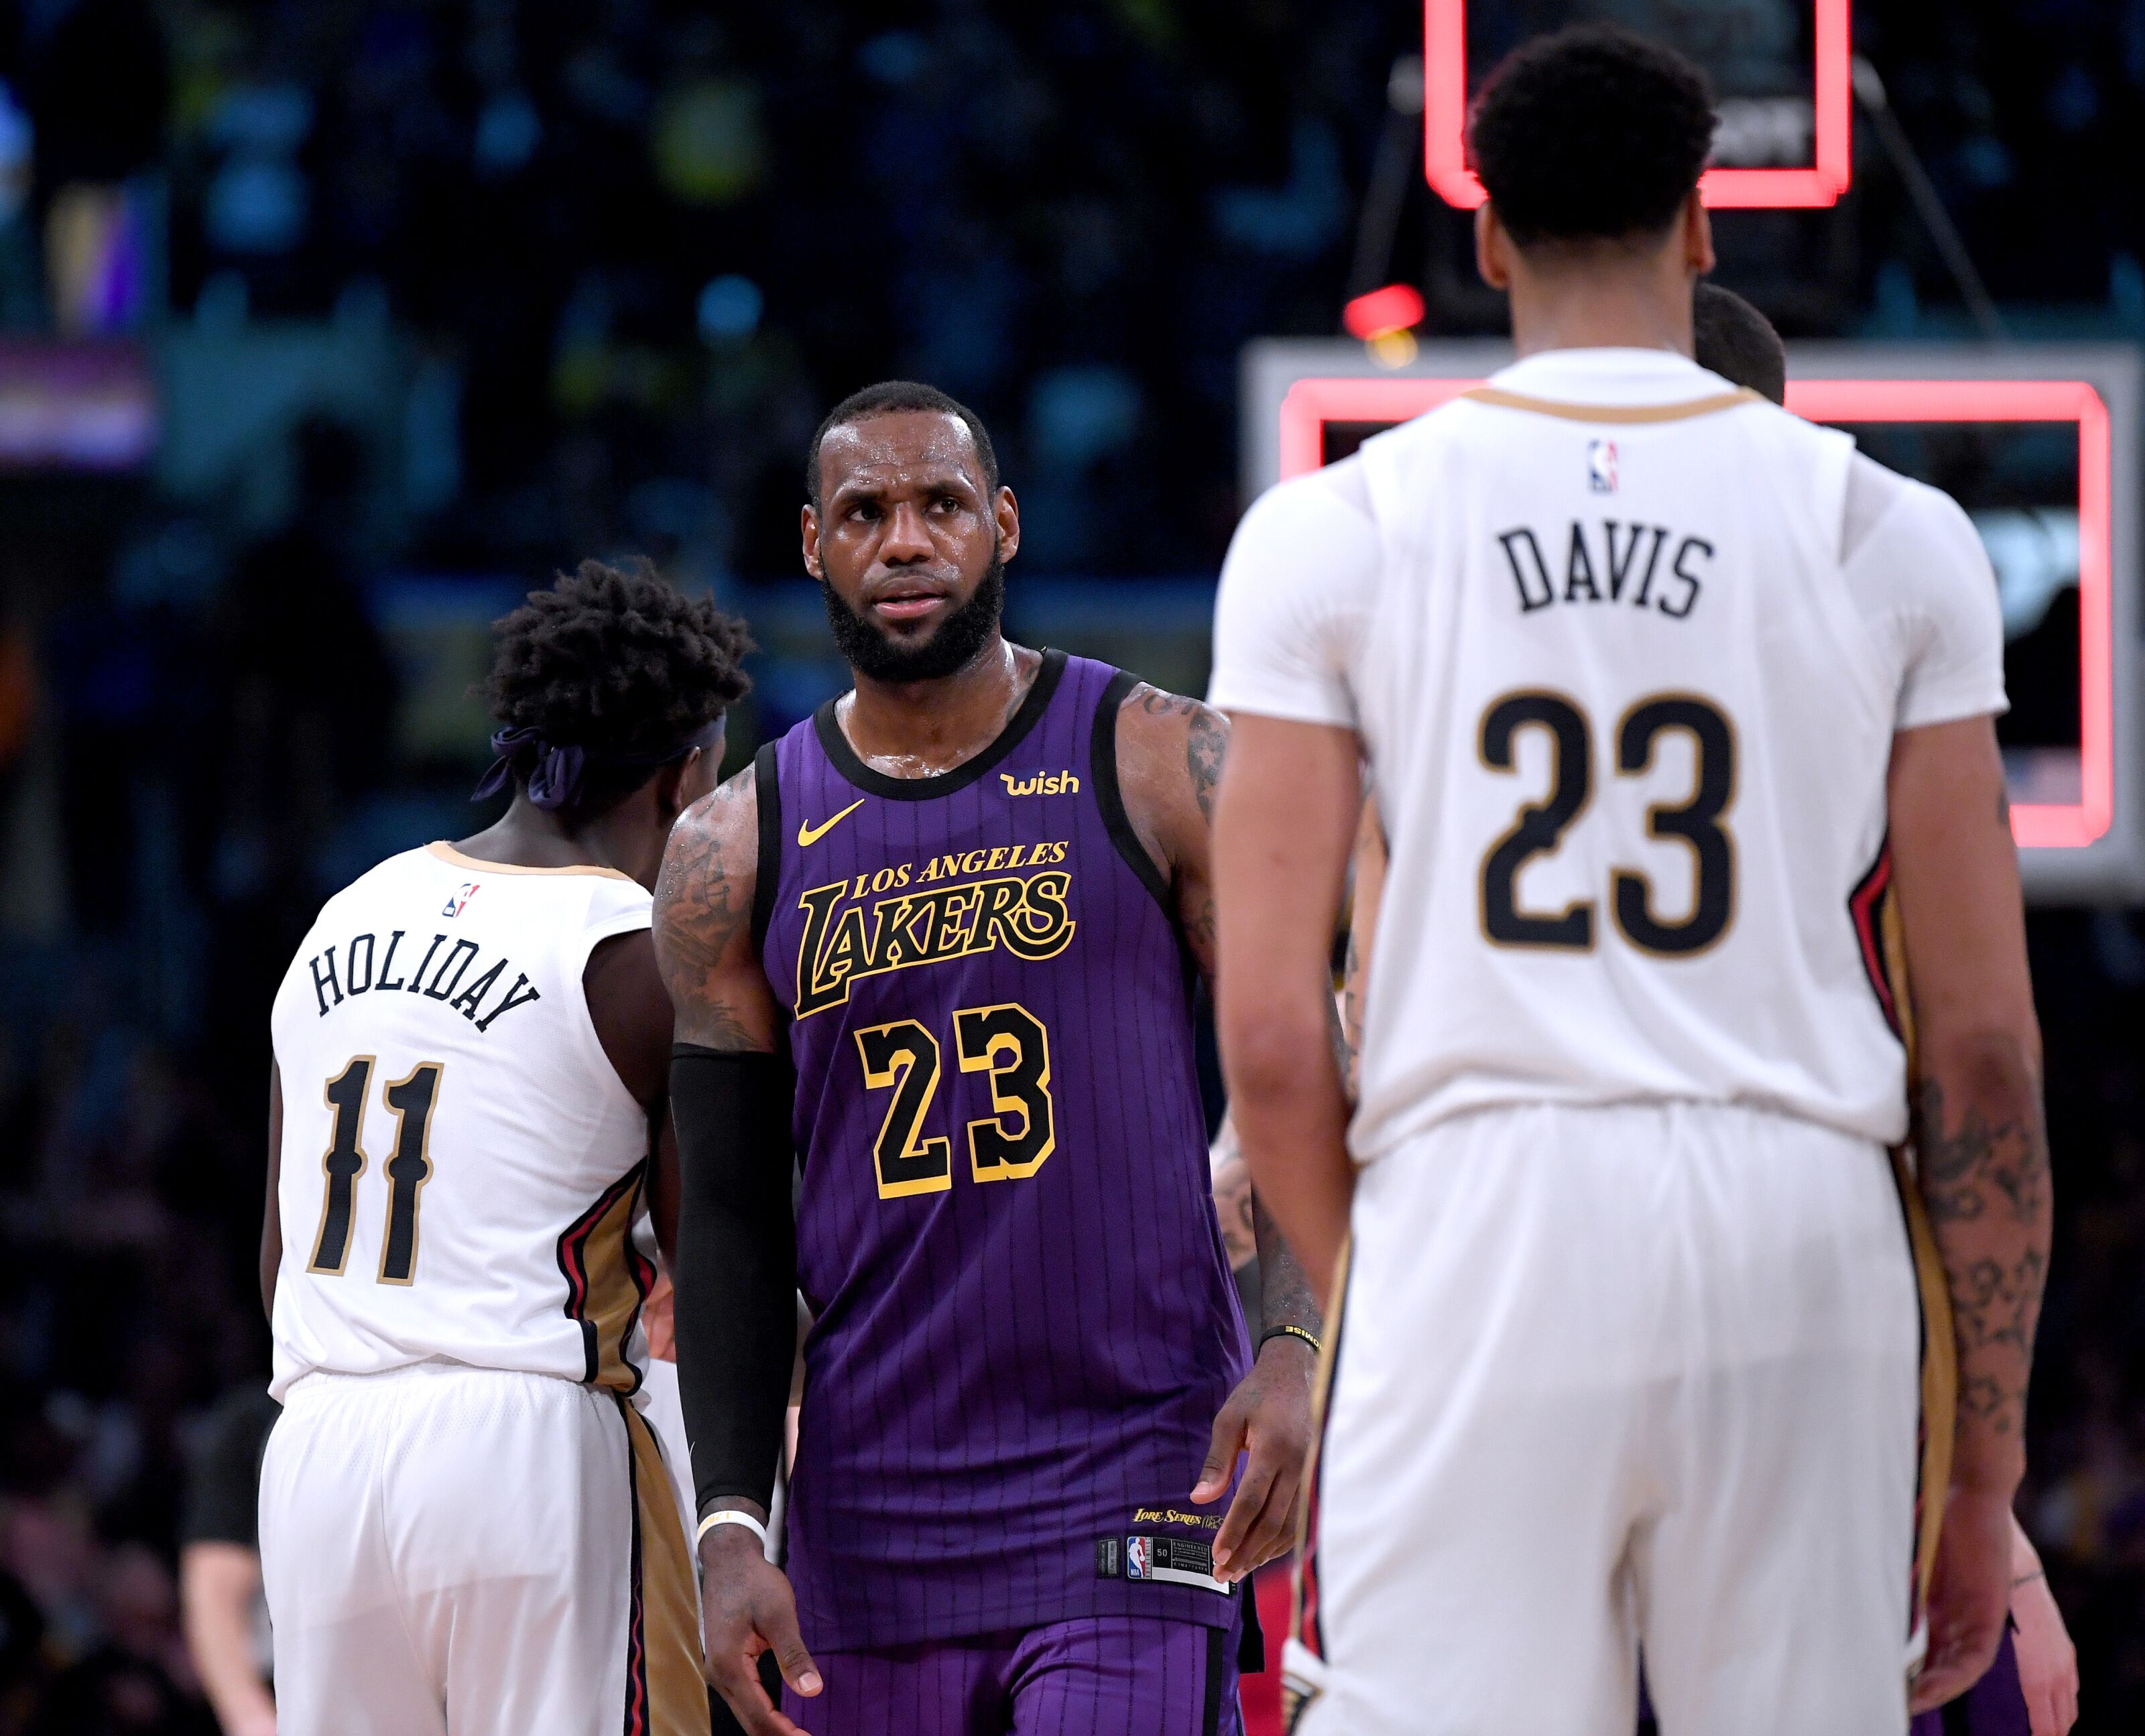 9cc370188d1525 Los Angeles Lakers  Win over Warriors accelerates Anthony Davis trade